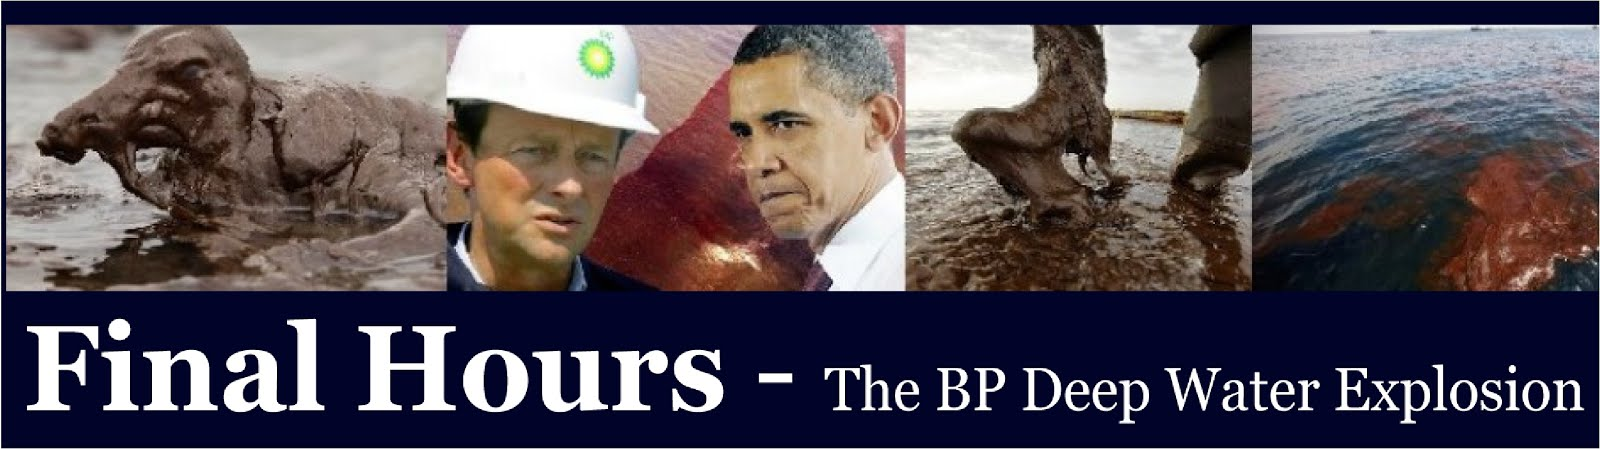 Final Hours - The BP Deepwater Explosion and the Abuse of Water Resources in North America